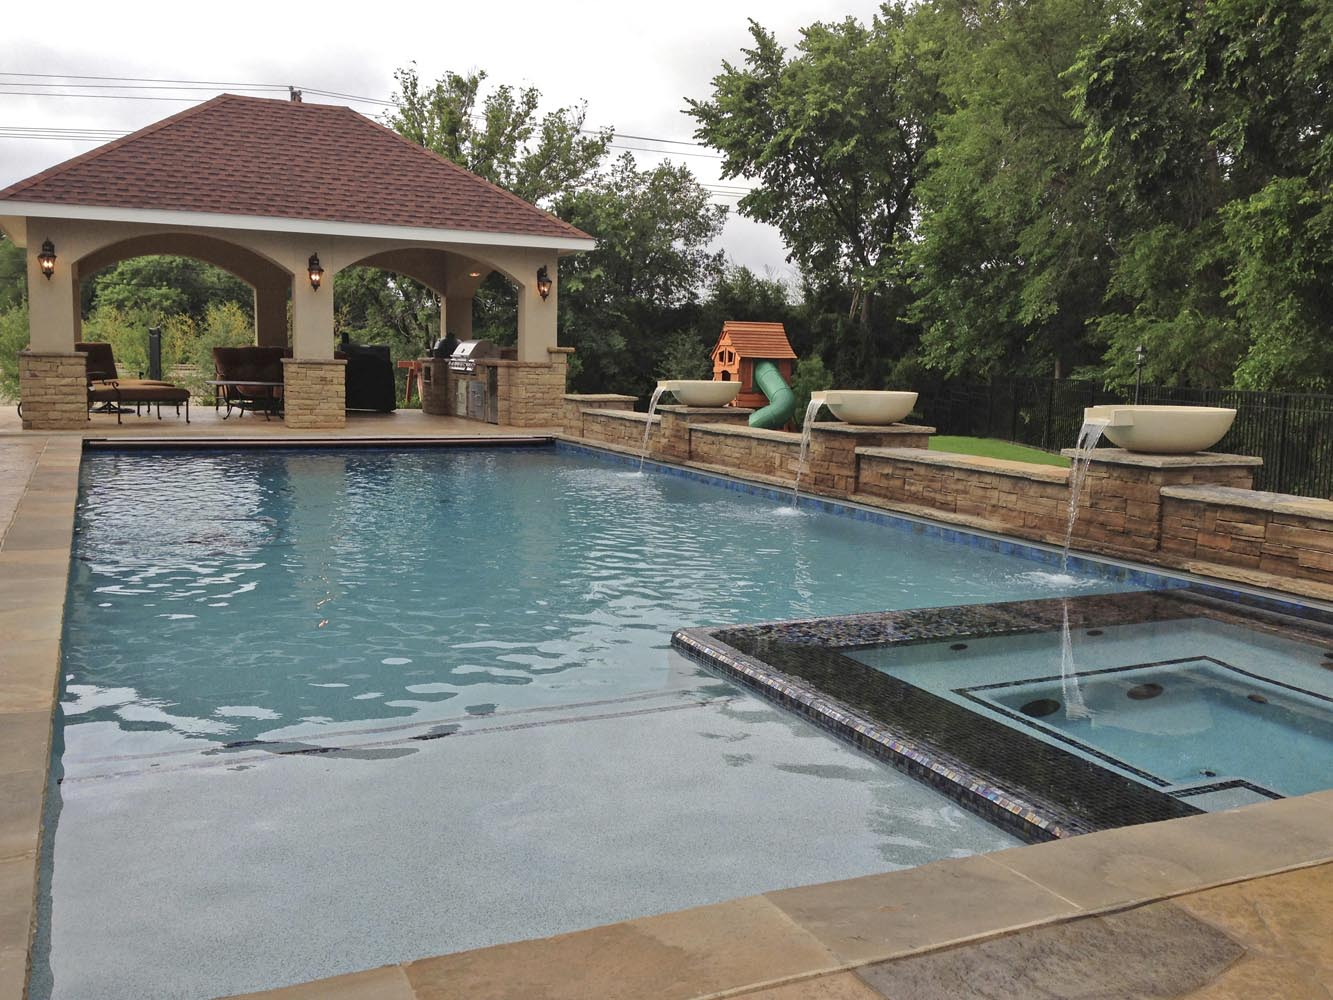 Dallas plano pool fountains custom water features gallery for Lazy l swimming pool covers